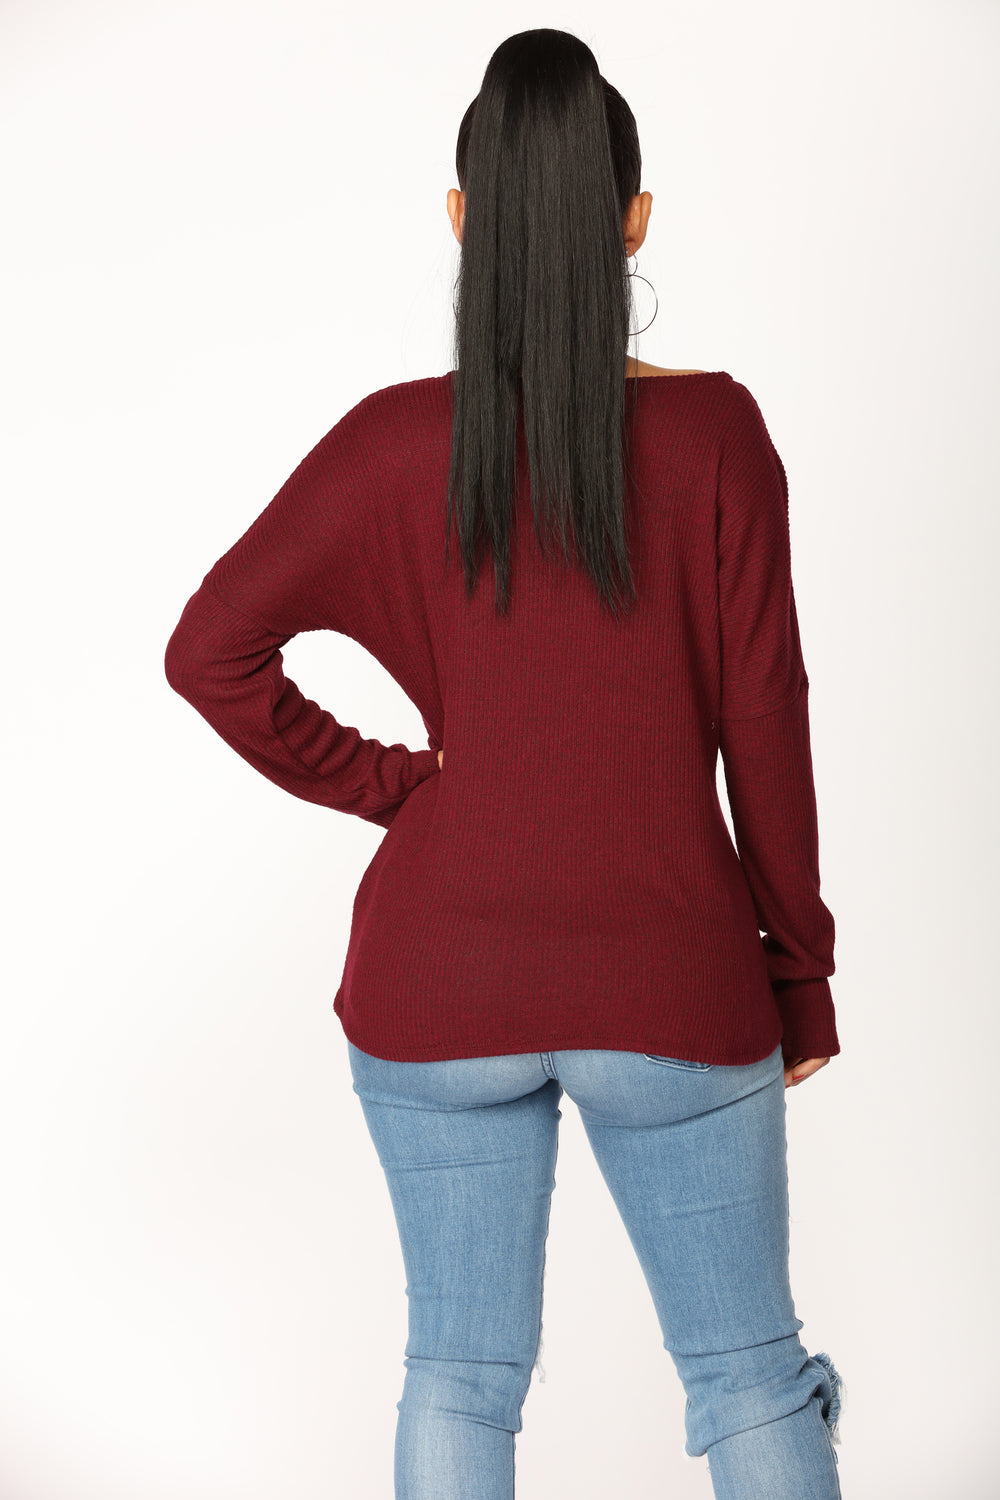 Ava Surplice Top -  Burgundy